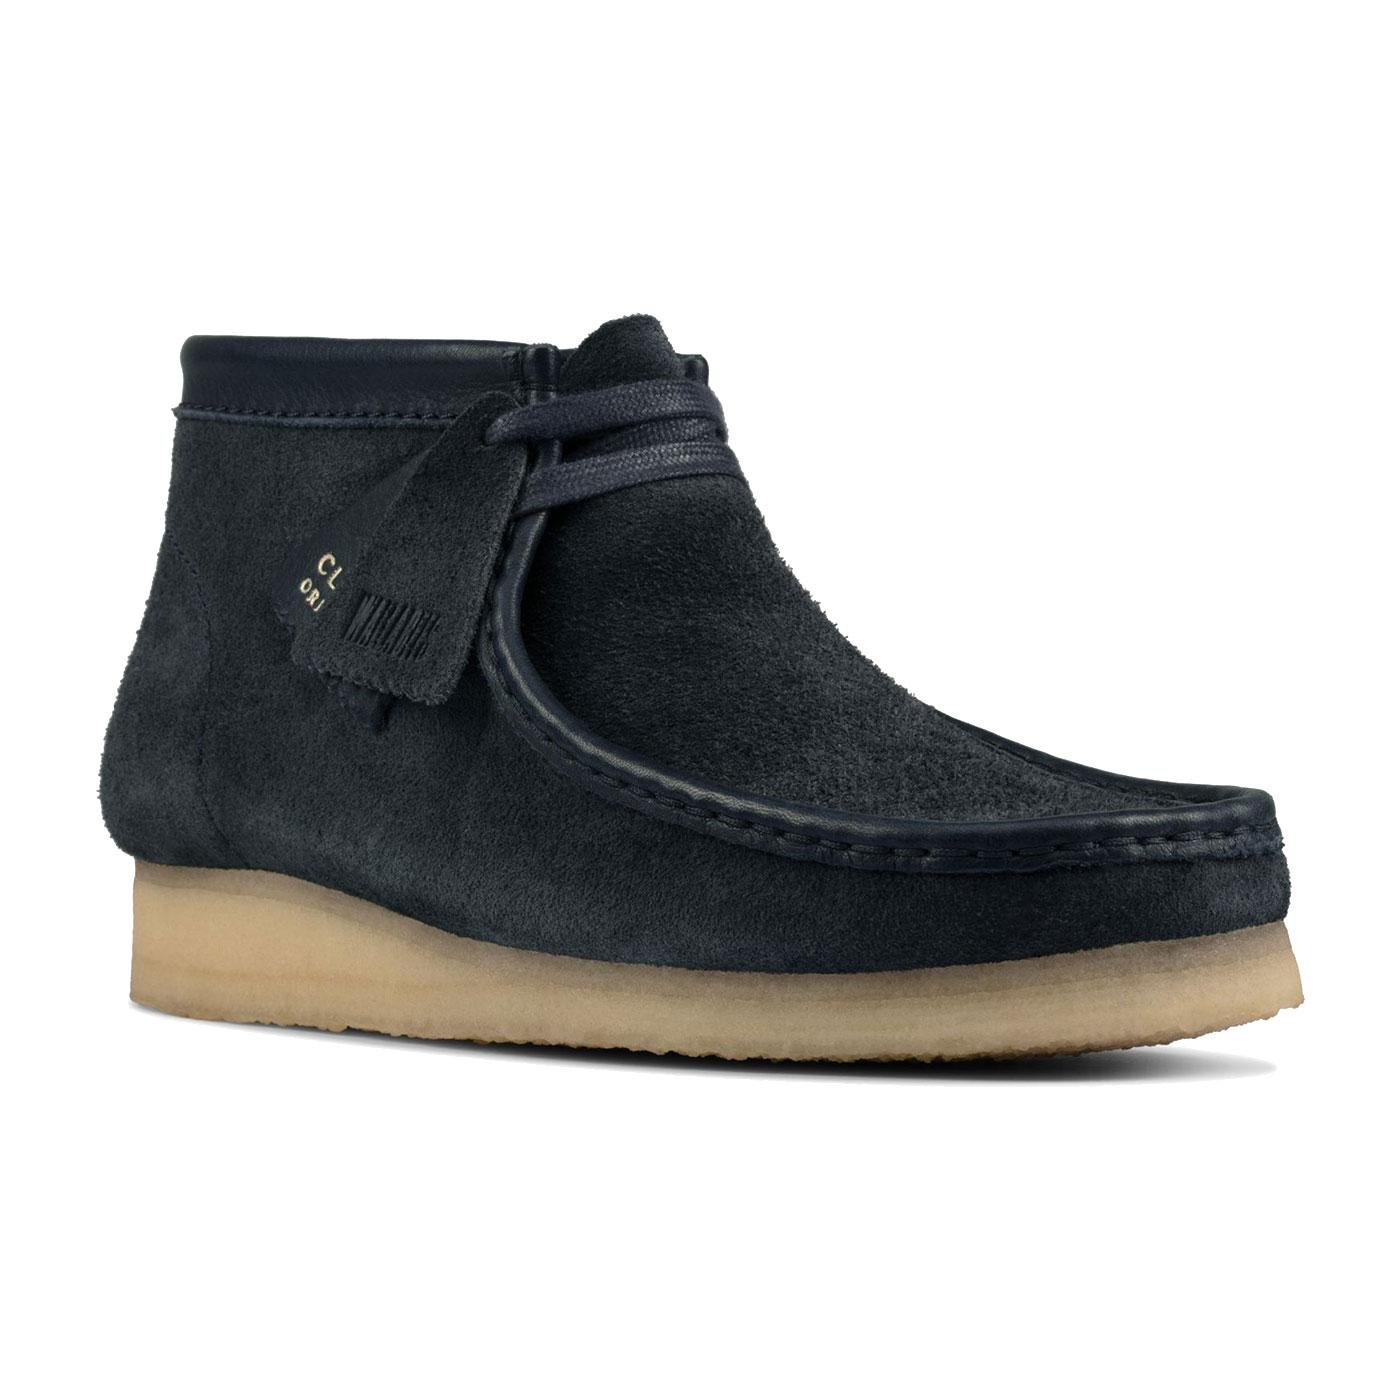 Wallabee Boots CLARKS ORIGINALS Hairy Suede Boots